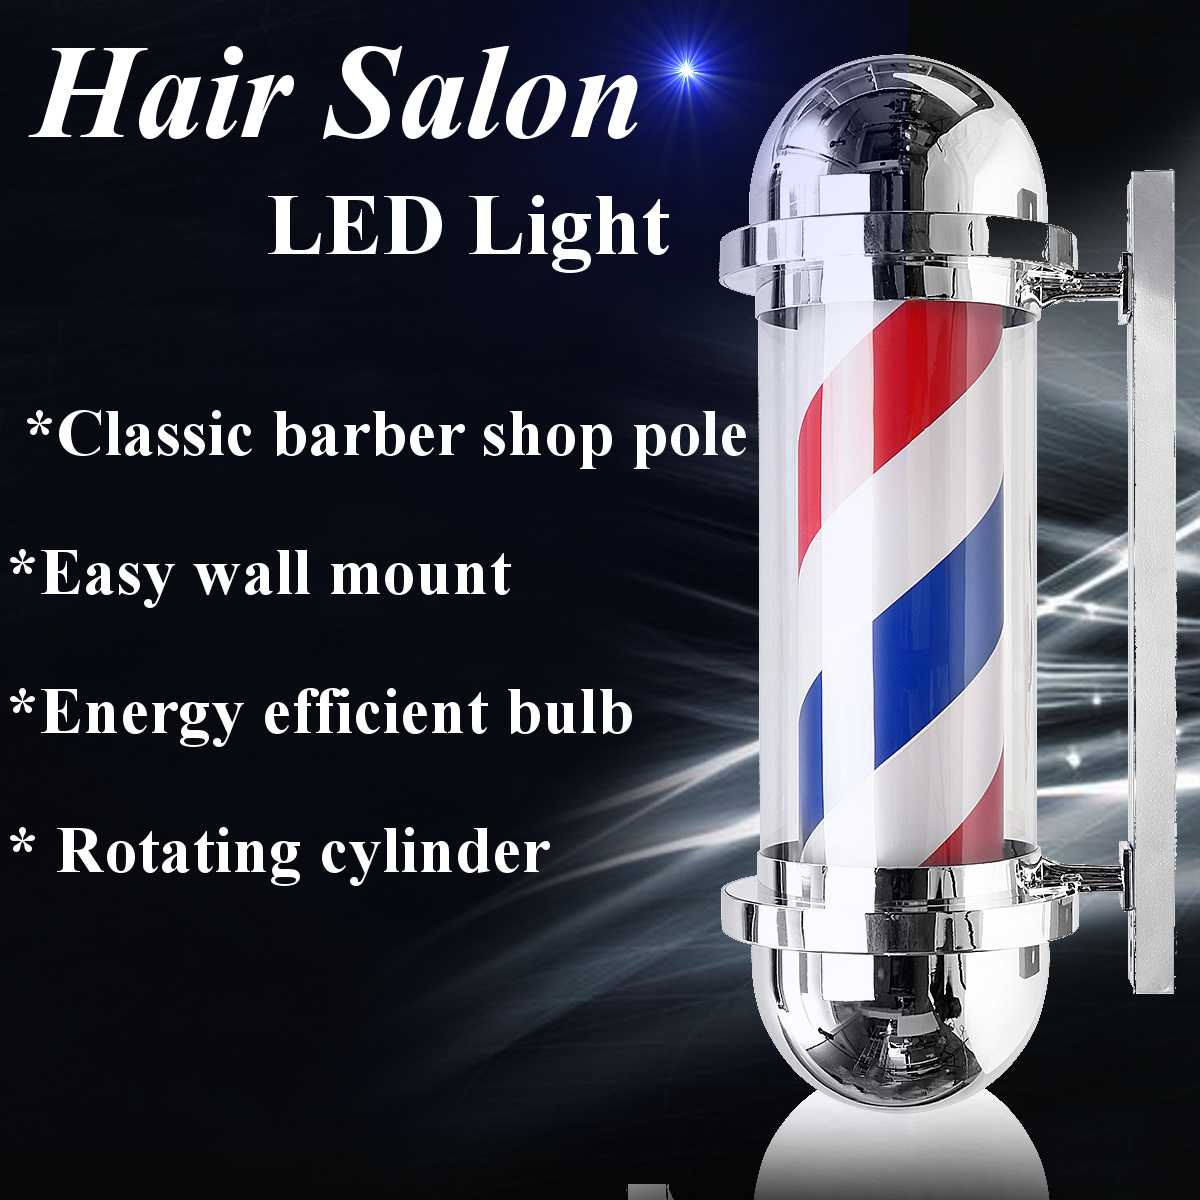 60cm Barber Pole Rotating Lighting Beauty Salon Equipment Barber Shop Sign Wall Hanging LED Downlights  Red White Blue Stripe60cm Barber Pole Rotating Lighting Beauty Salon Equipment Barber Shop Sign Wall Hanging LED Downlights  Red White Blue Stripe